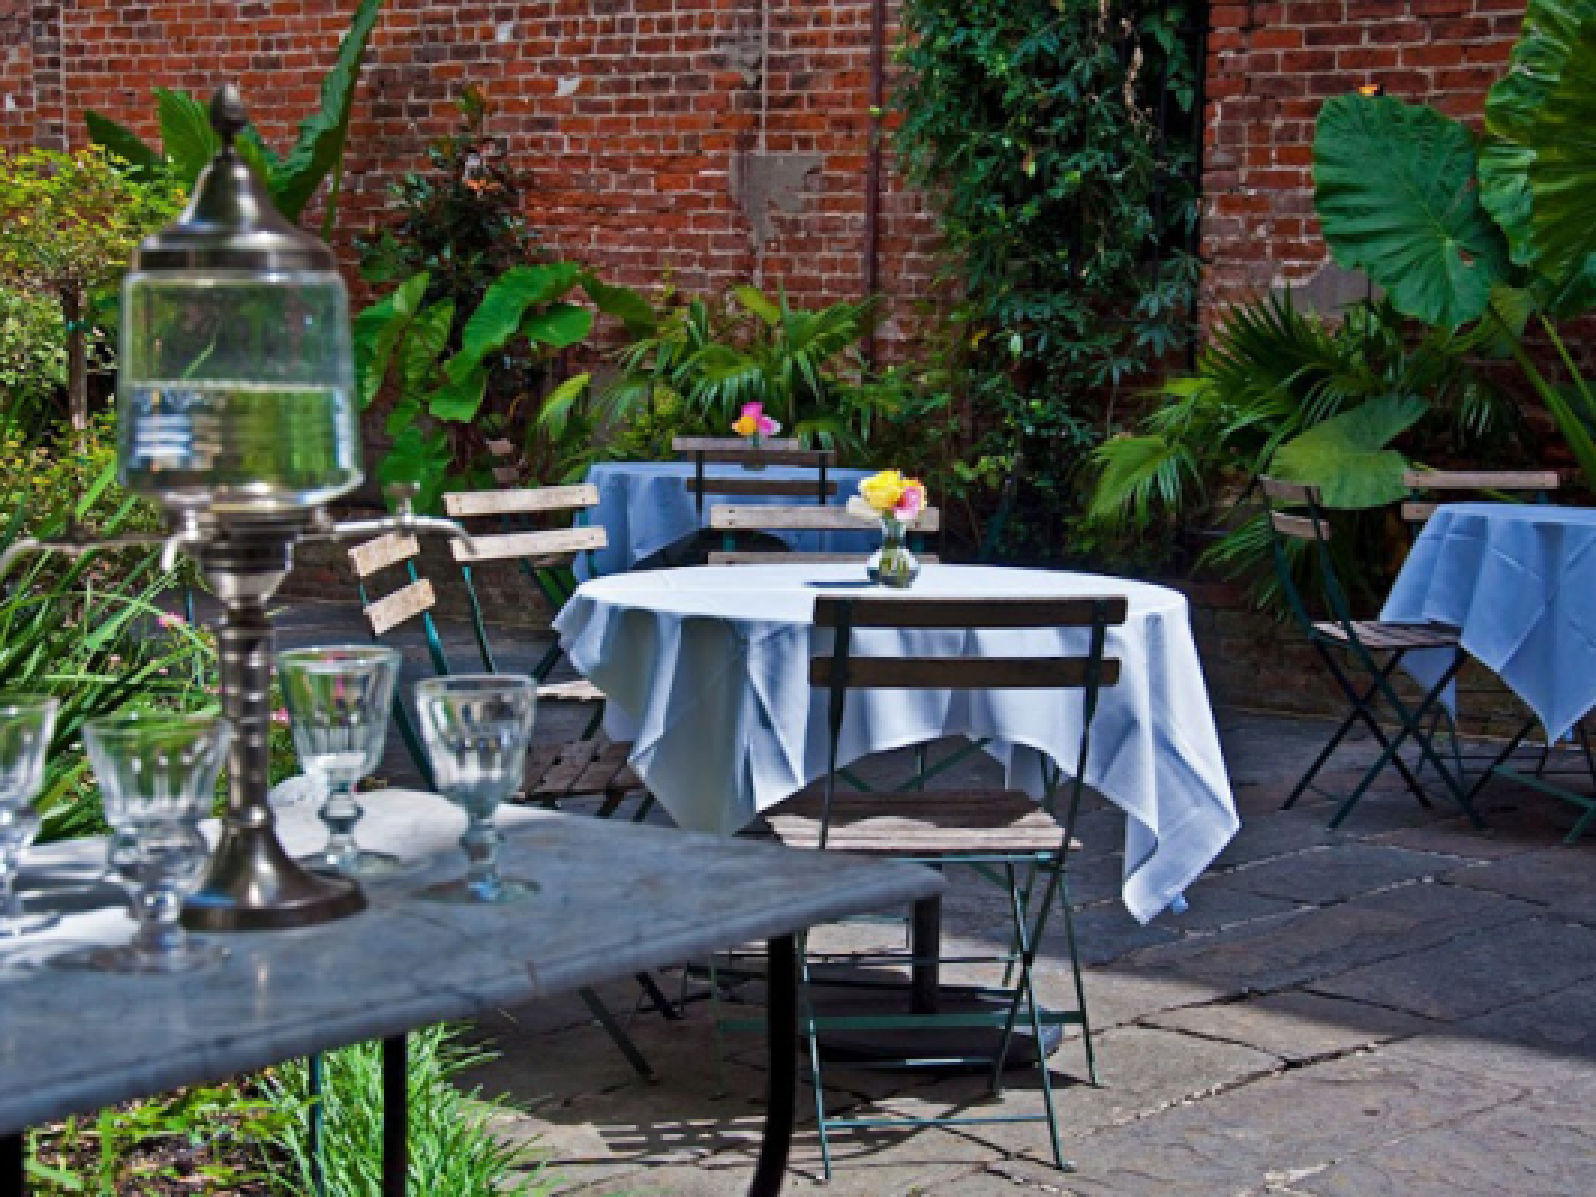 Outdoor dining area at Café Amelie near Hotel St. Pierre